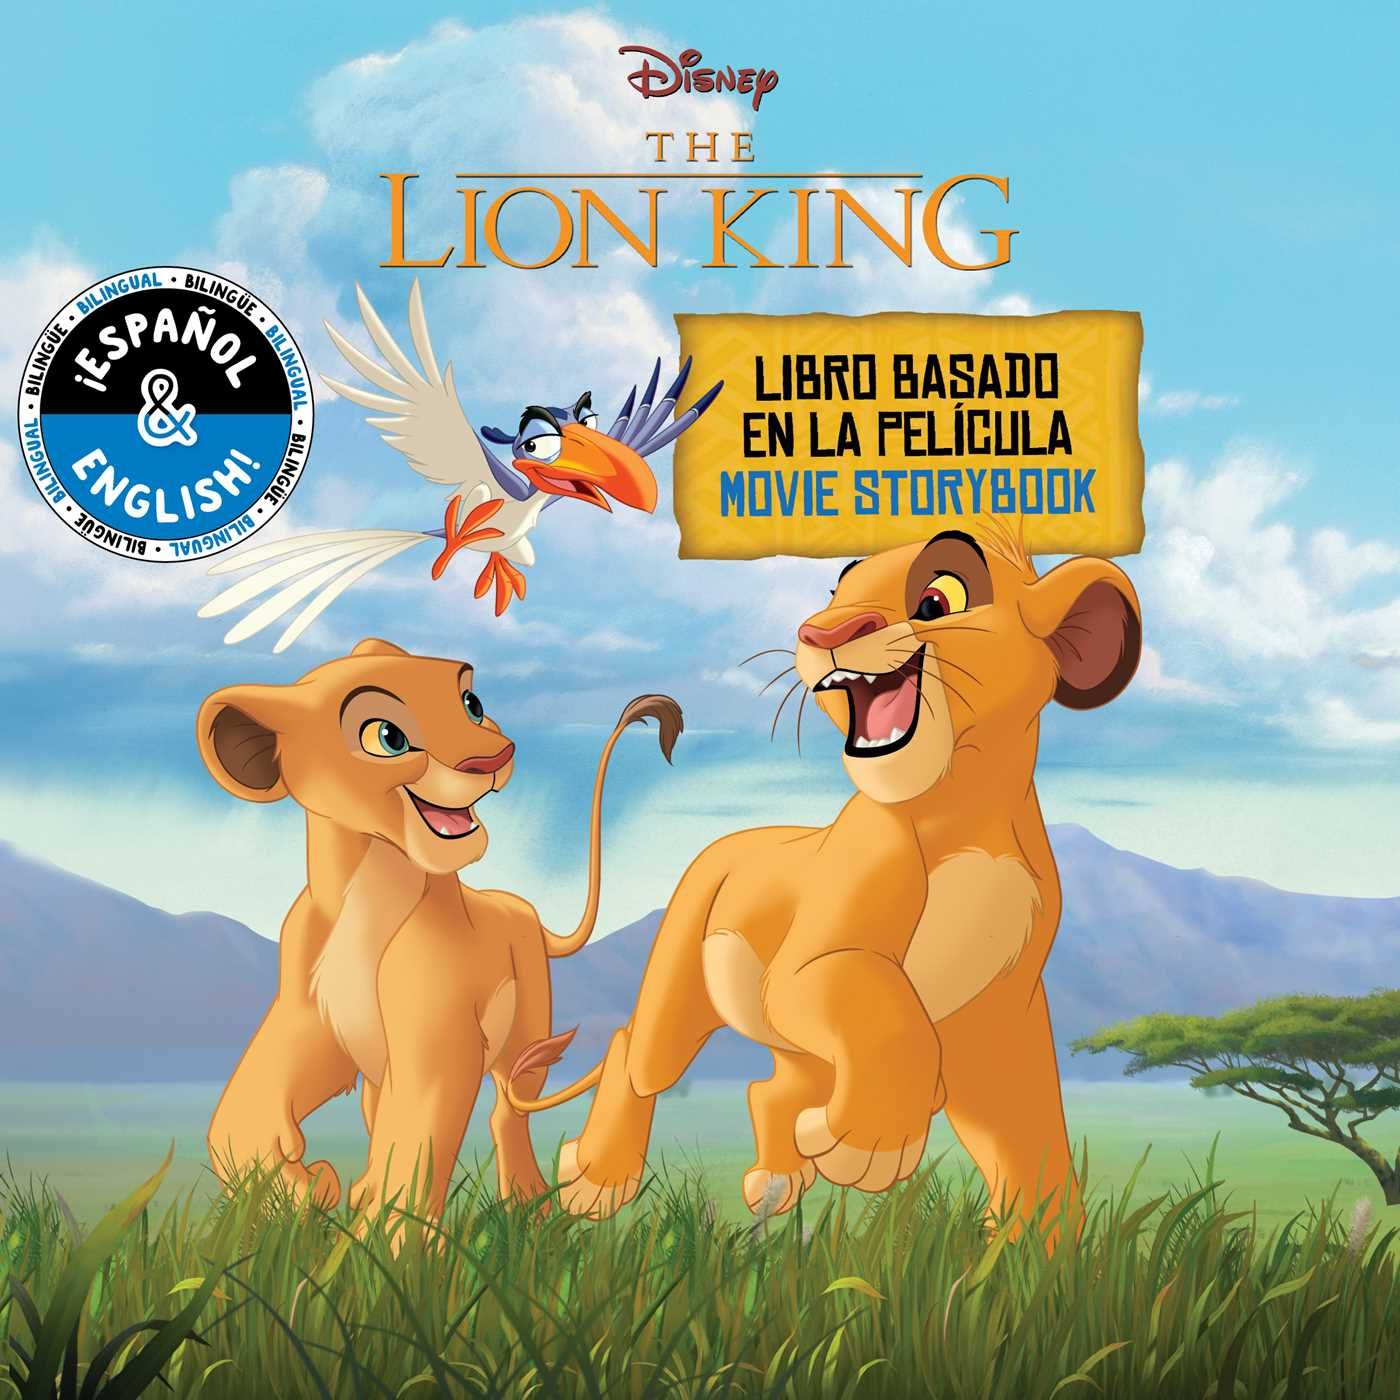 The Lion King:Fire & Rescue (2021 film)